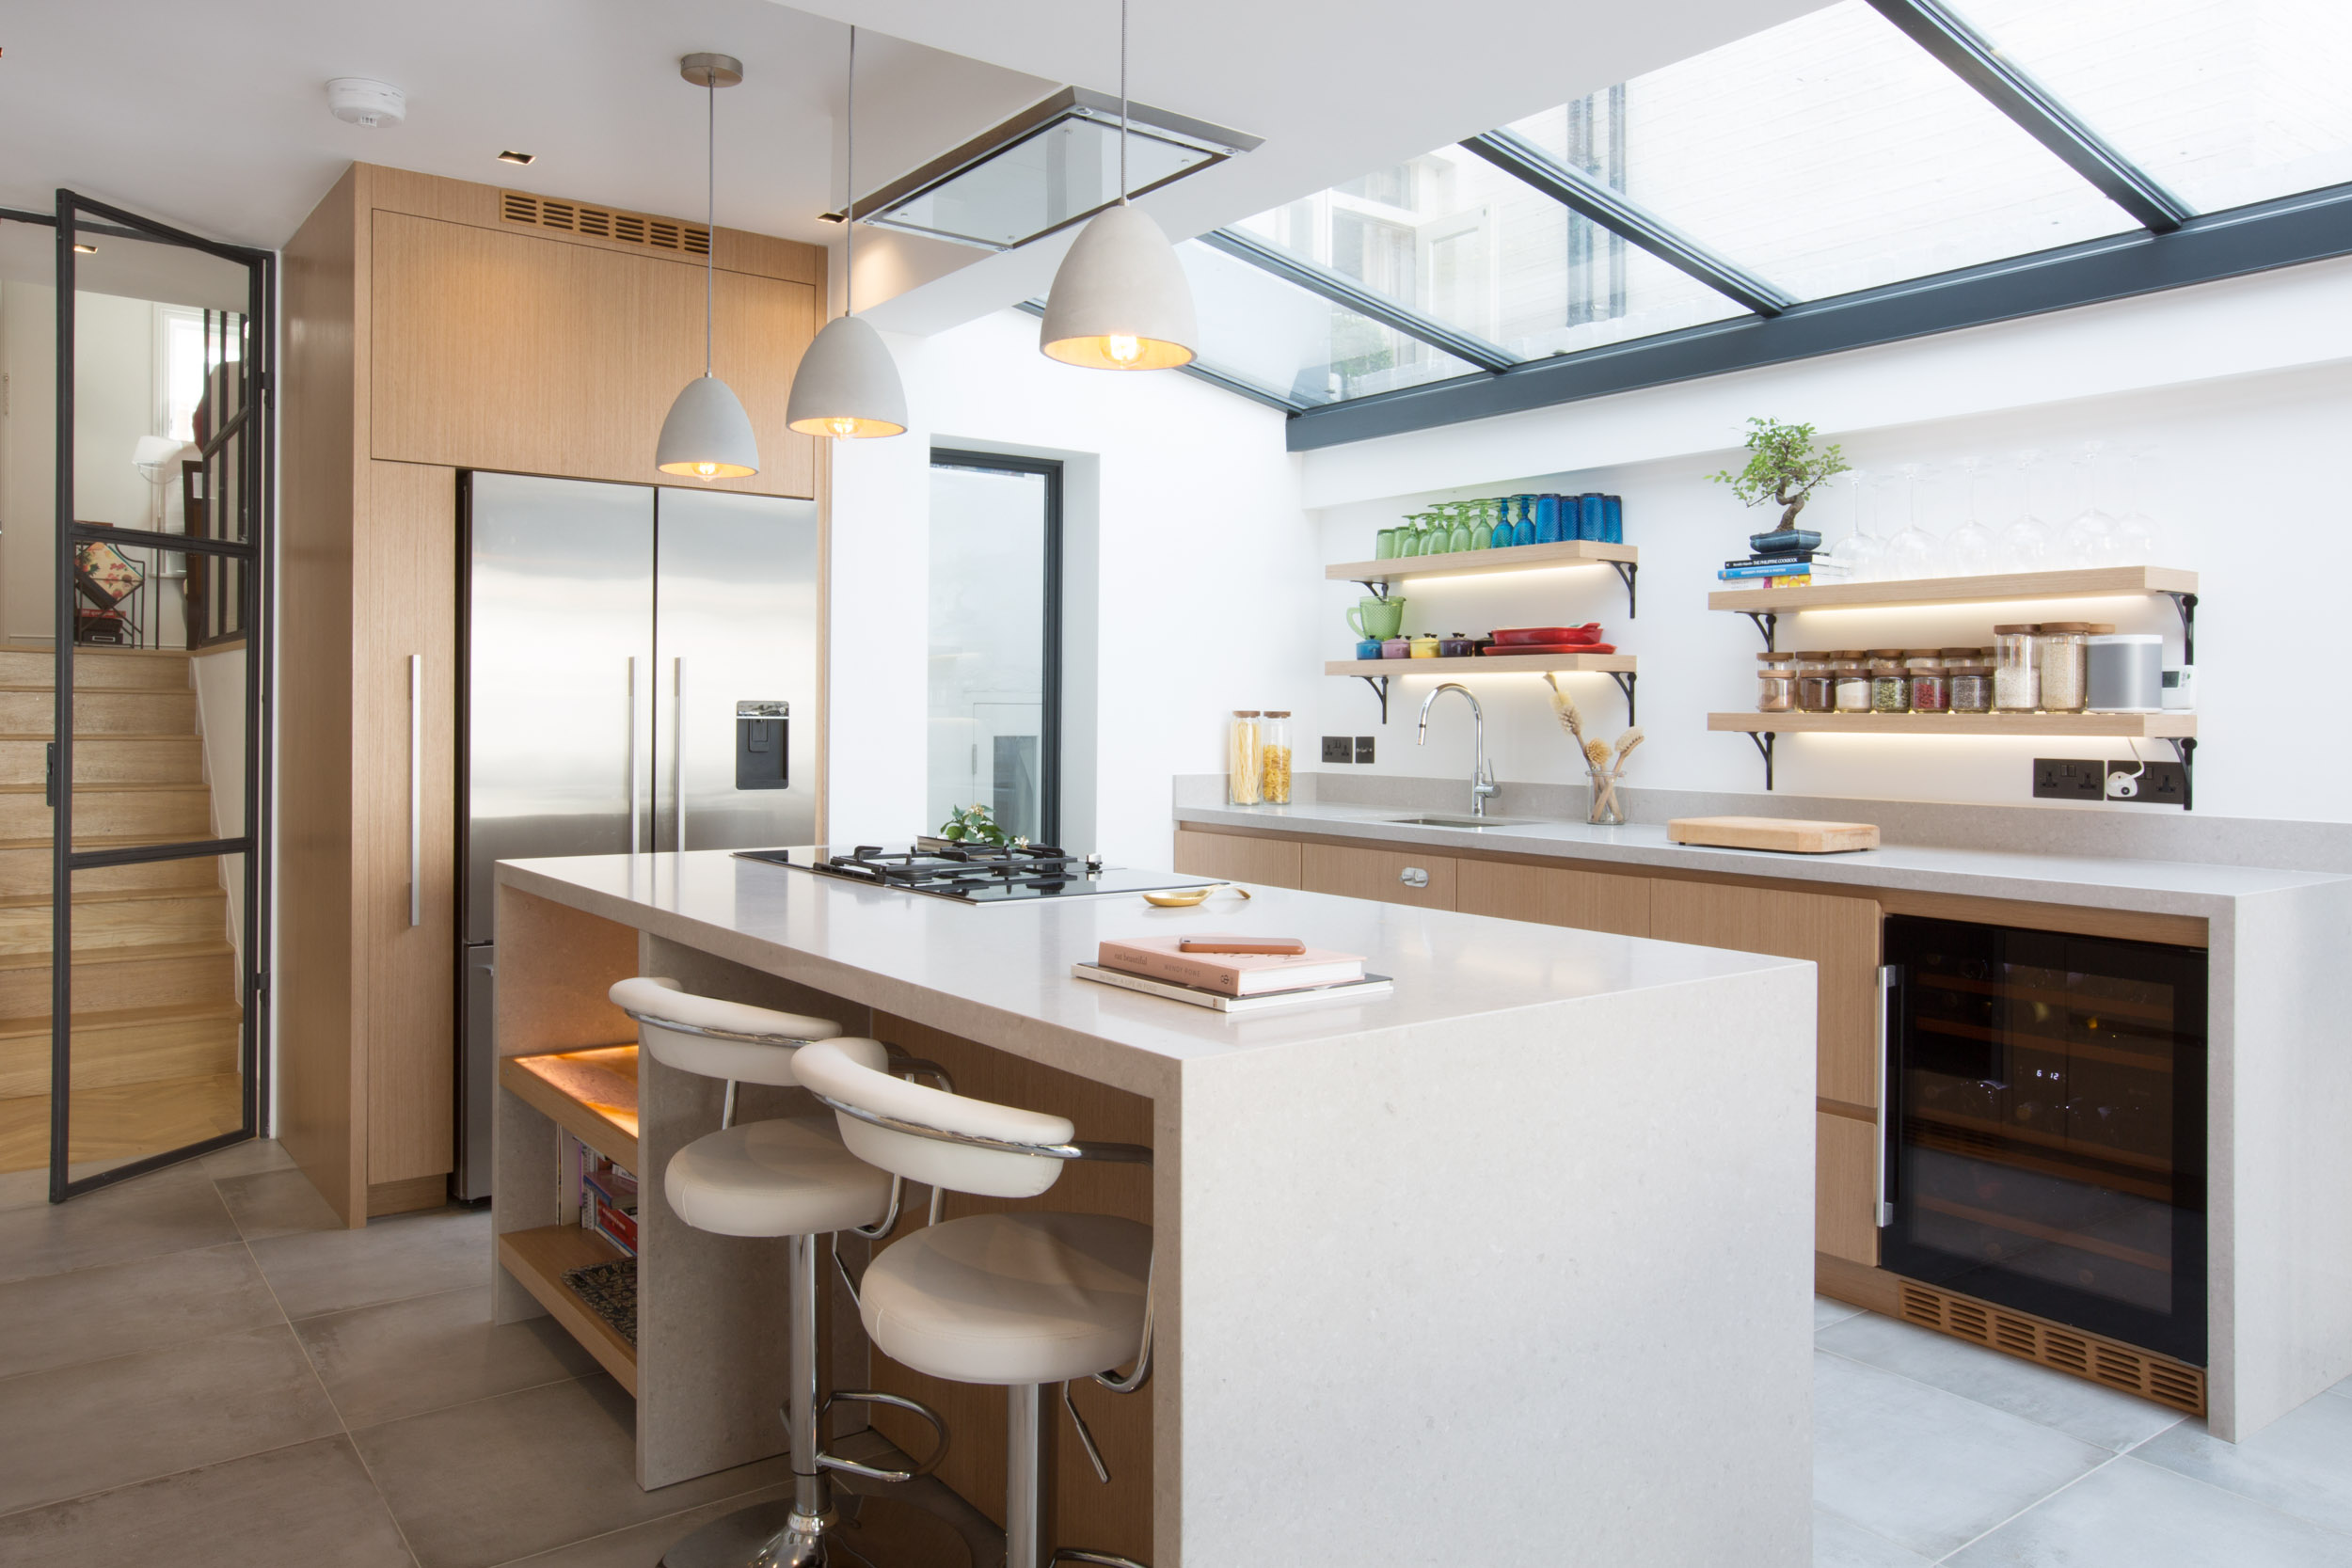 </p> <p>Find your ideal home design pro on designfor-me.com - get matched and see who's interested in your home project. Click image to see more inspiration from our design pros</p> <p>Design by Elcio, architect from Kensington and Chelsea, London</p> <p>#architecture #homedesign #modernhomes #homeinspiration #kitchens #kitchendesign #kitcheninspiration #kitchenideas #kitchengoals #skylights #rooflights </p> <p>